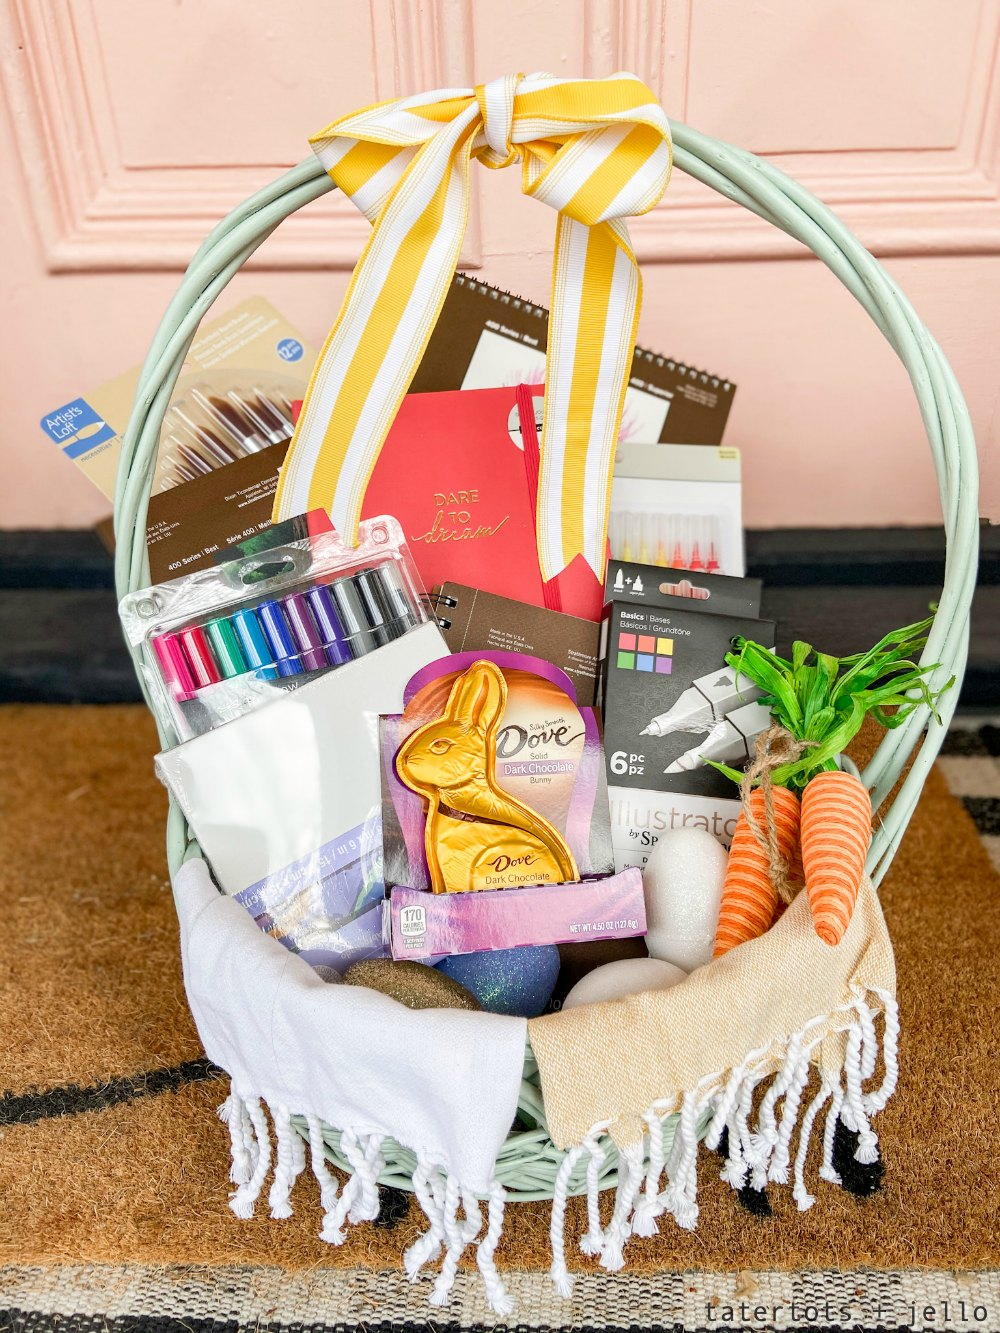 Easter Basket for the Creative Person in your Life! Fill a basket this Easter with useful art supplies that will provide hours of creative expression and joy for months to come!